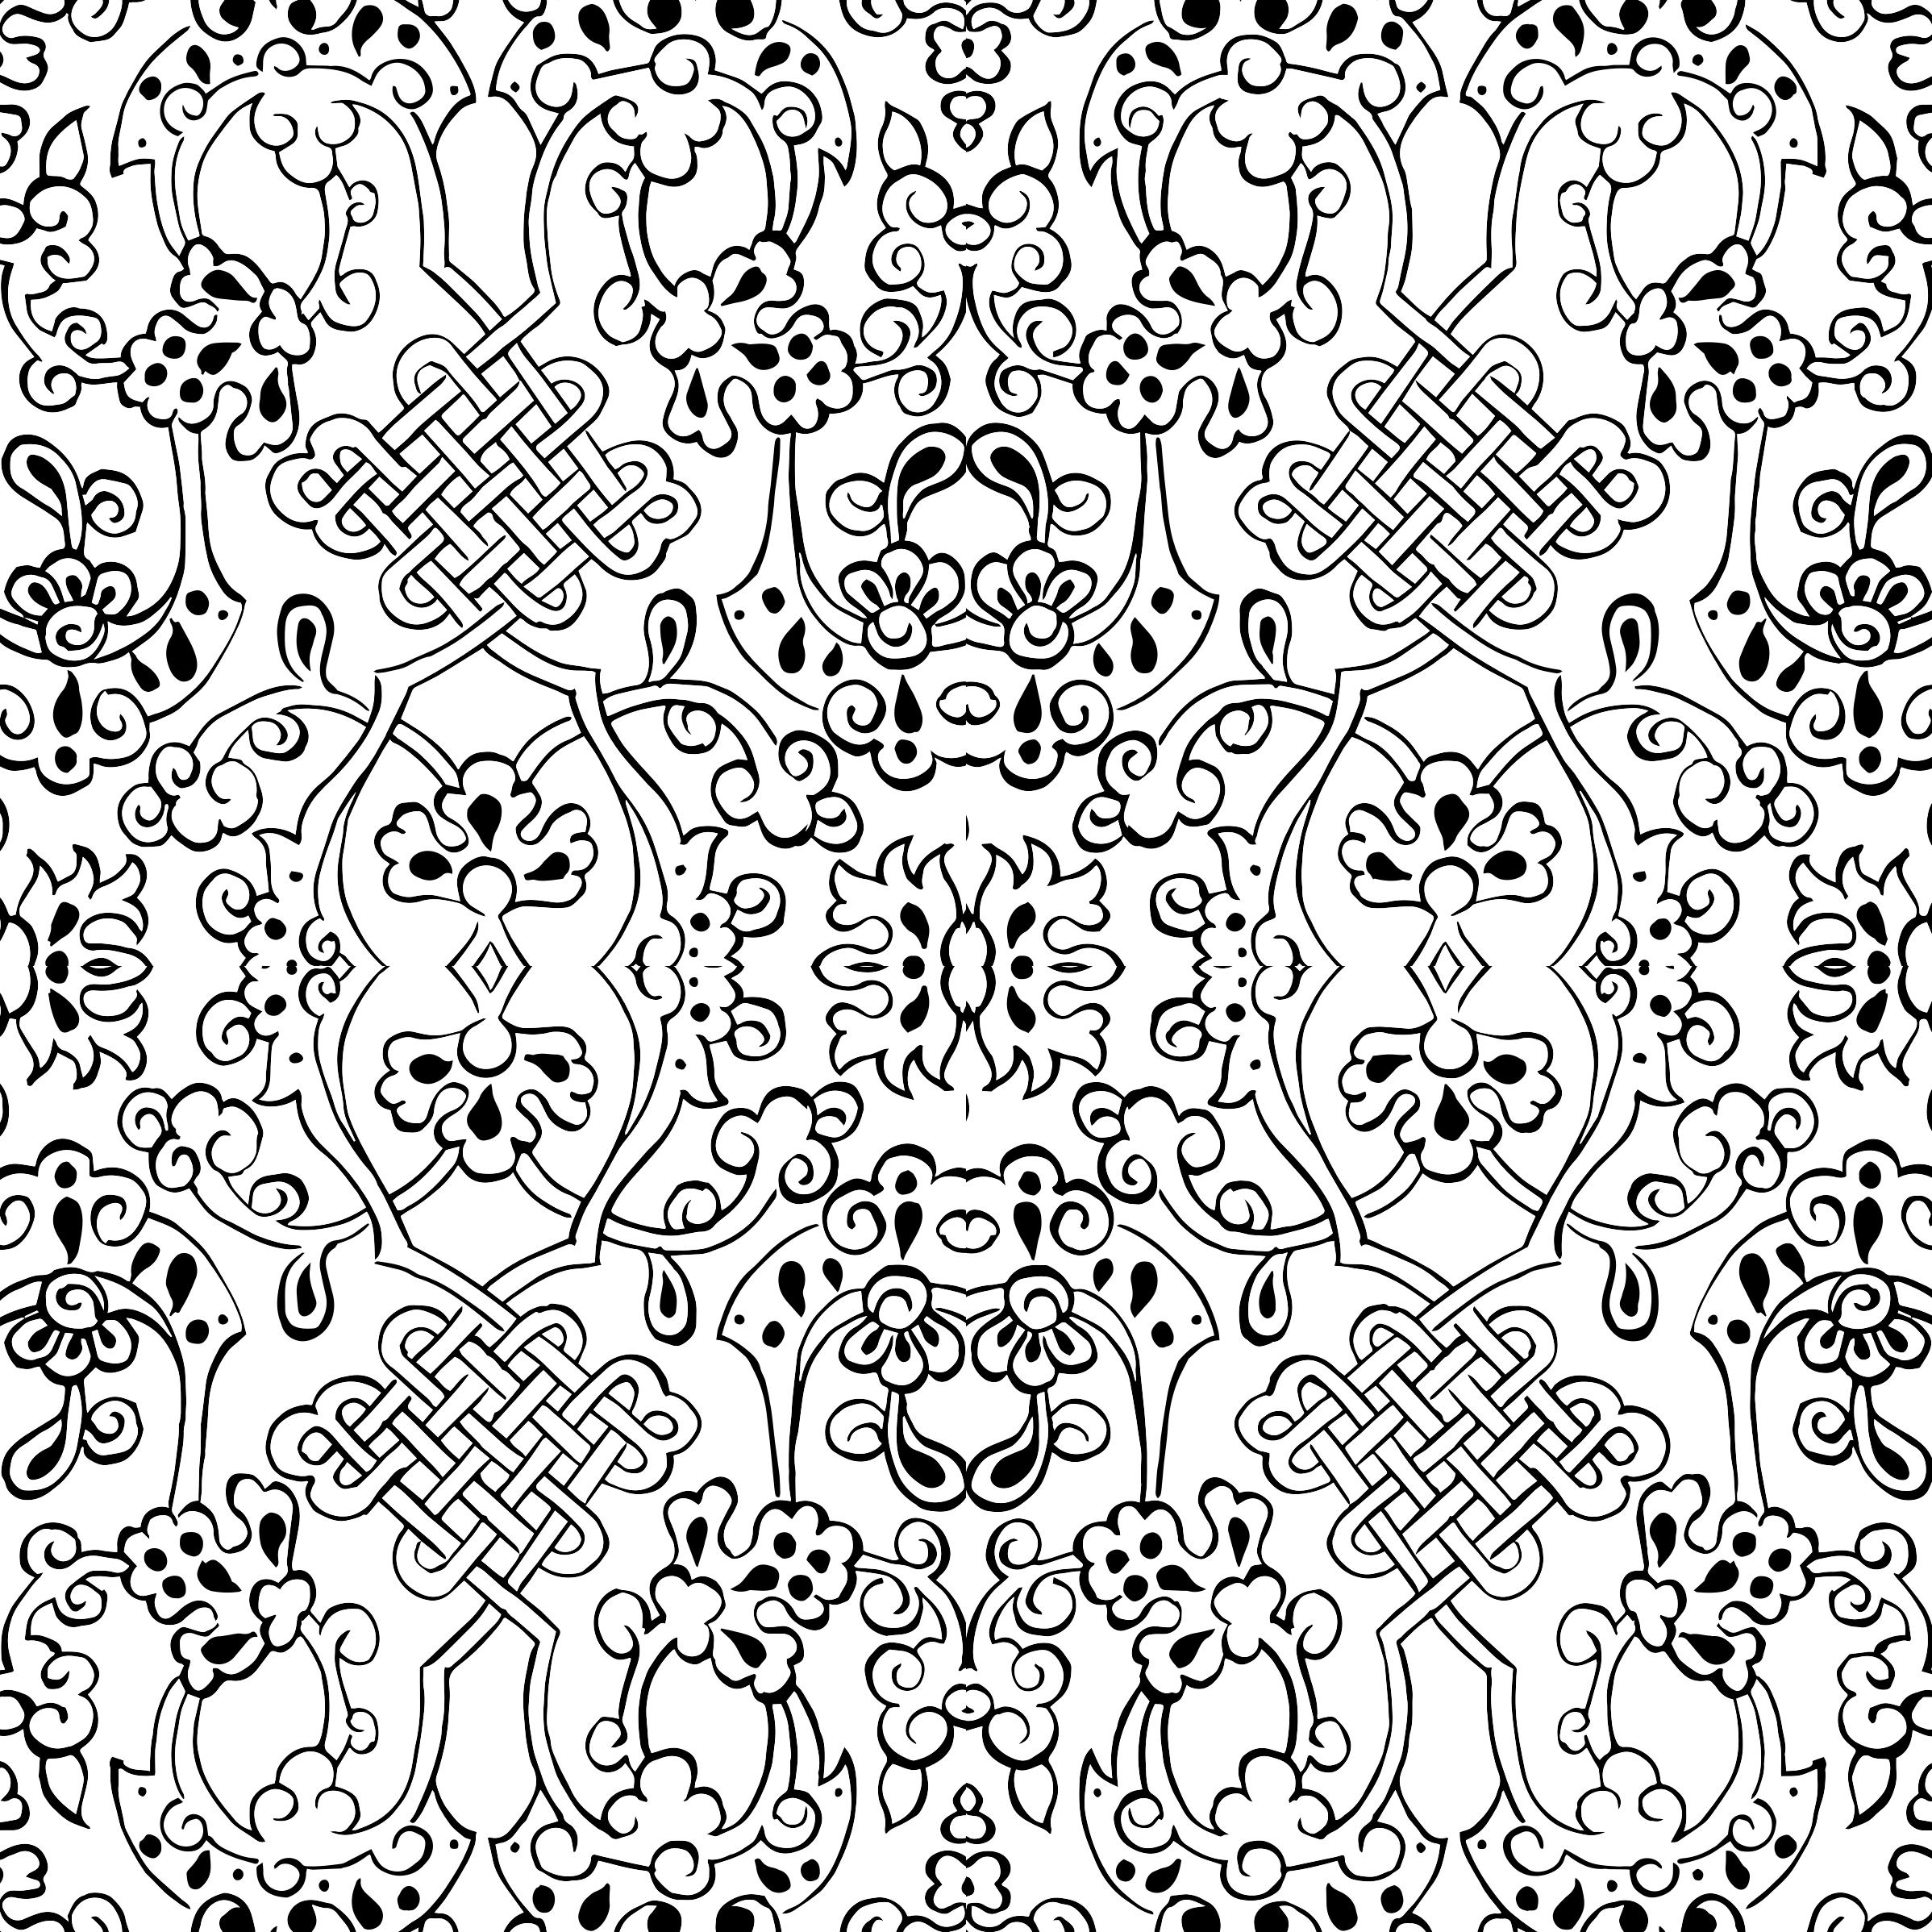 Psychedelic patterns png. Clipart pattern big image